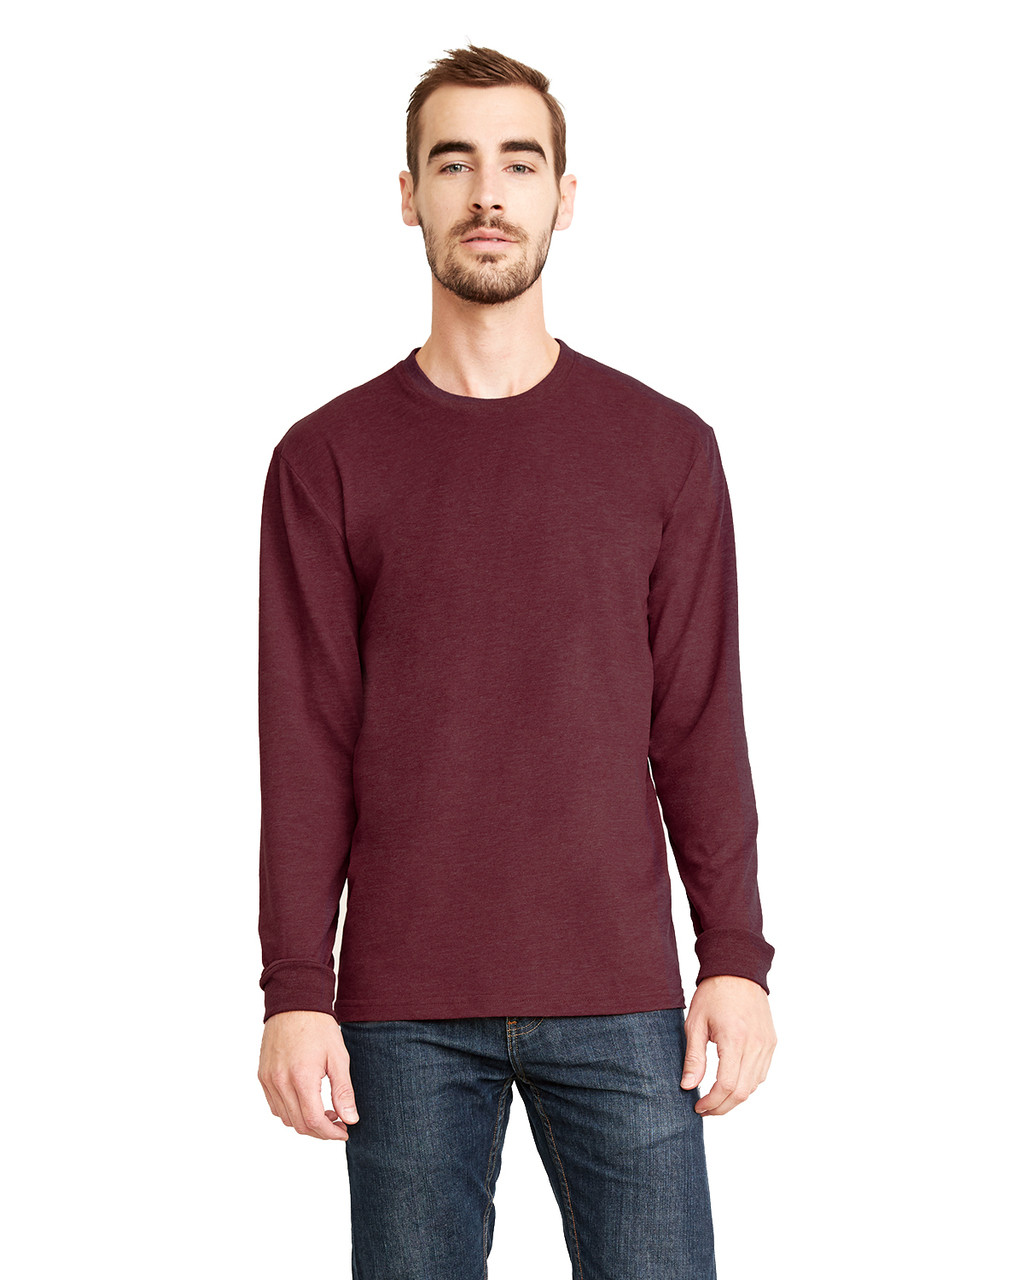 Heather Maroon - 6411 Next Level Unisex Sueded Long-Sleeve Crew Shirt | Blankclothing.ca